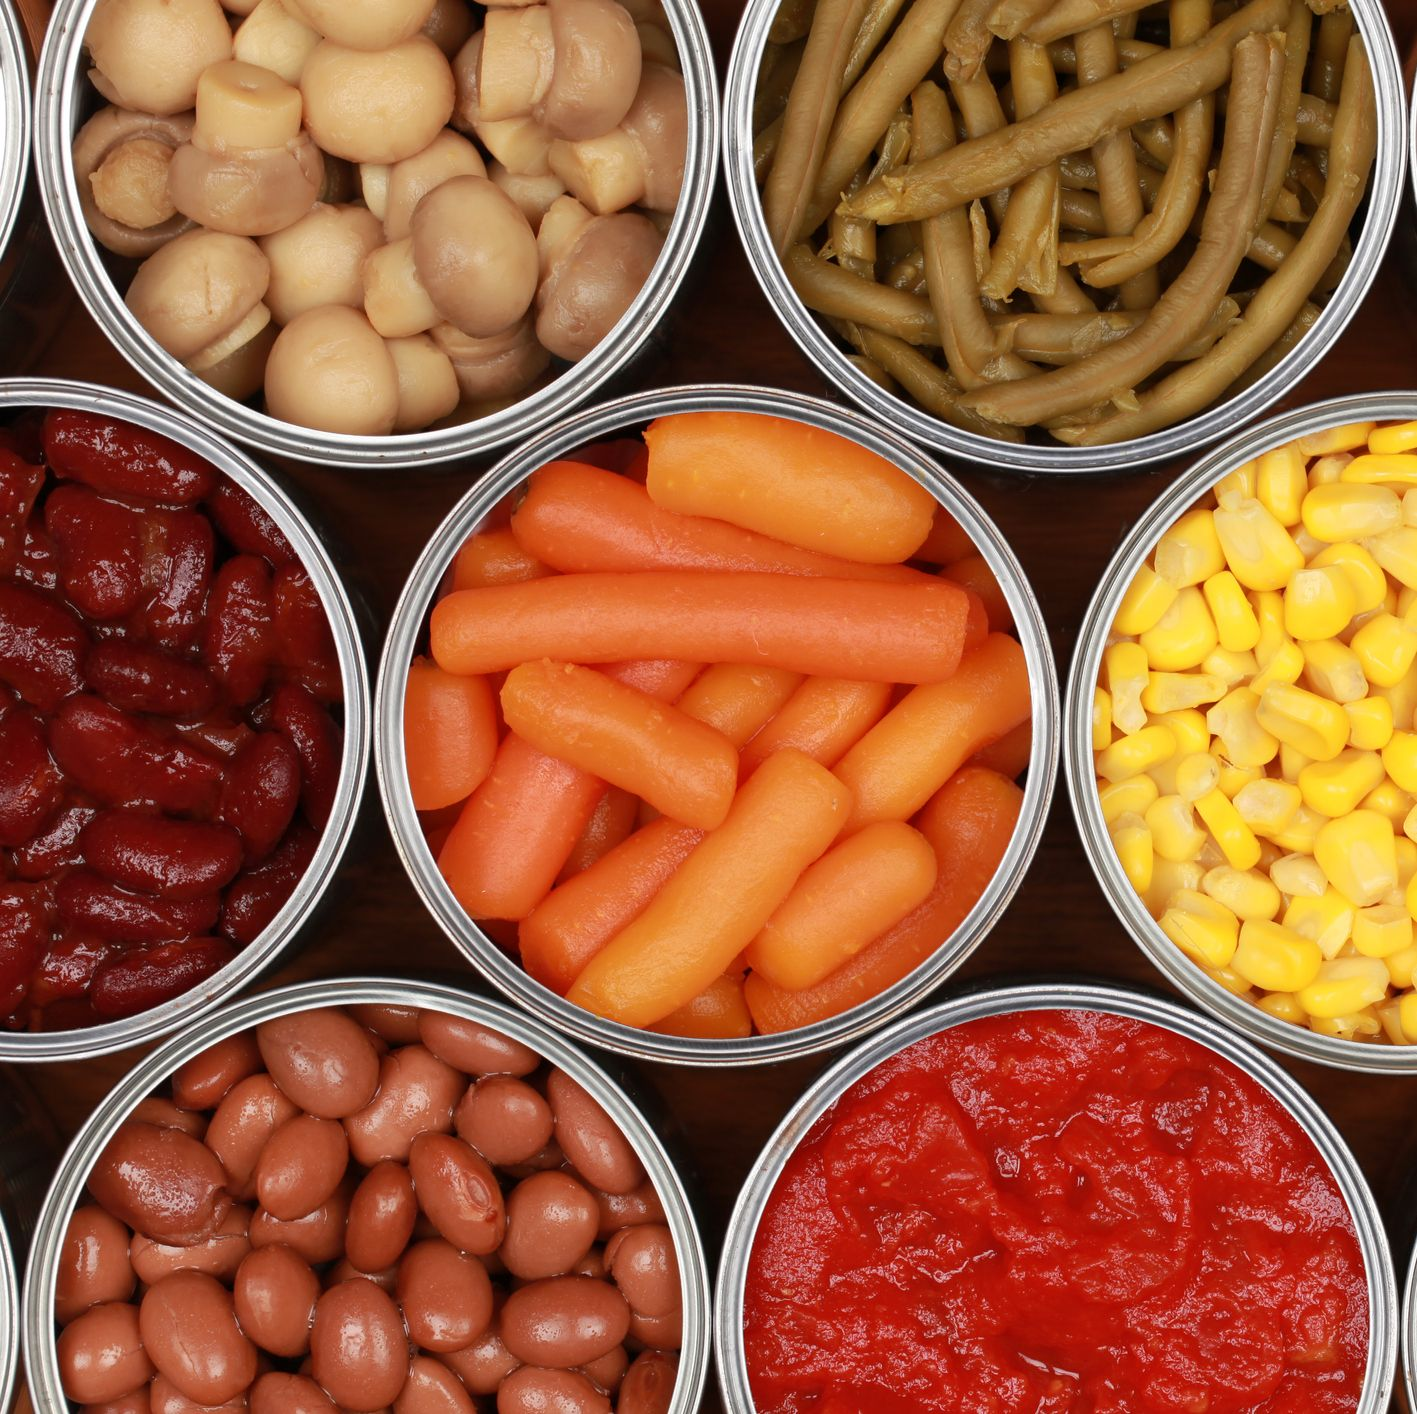 Vegetables in cans